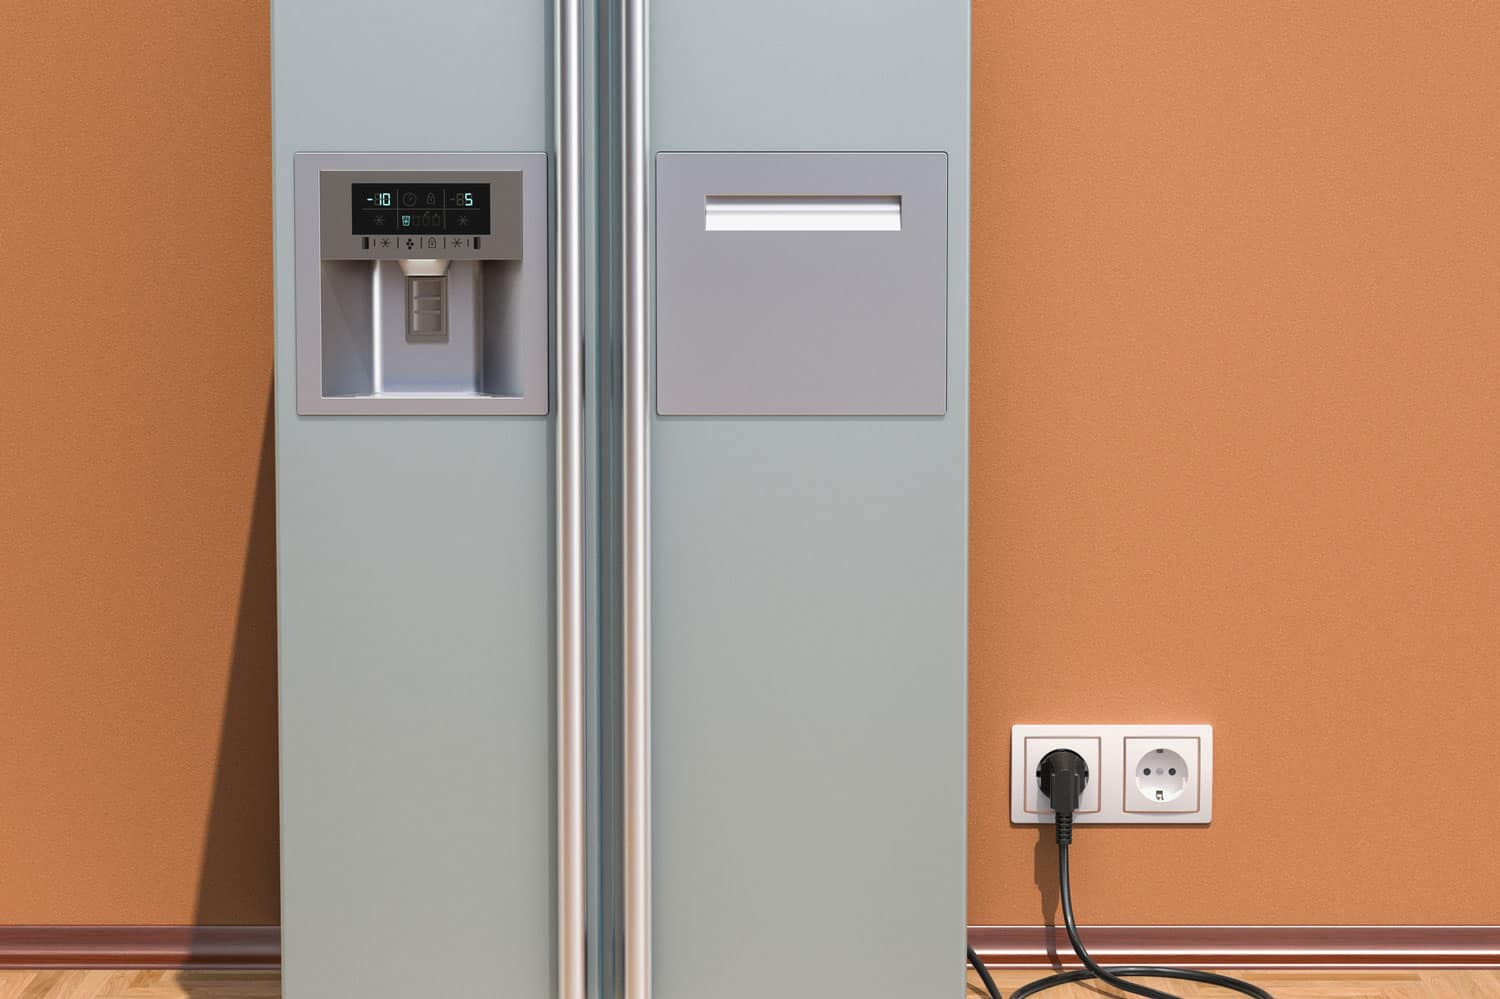 Modern fridge with side-by-side door system in interior, How Many Amps Does A Refrigerator Use?